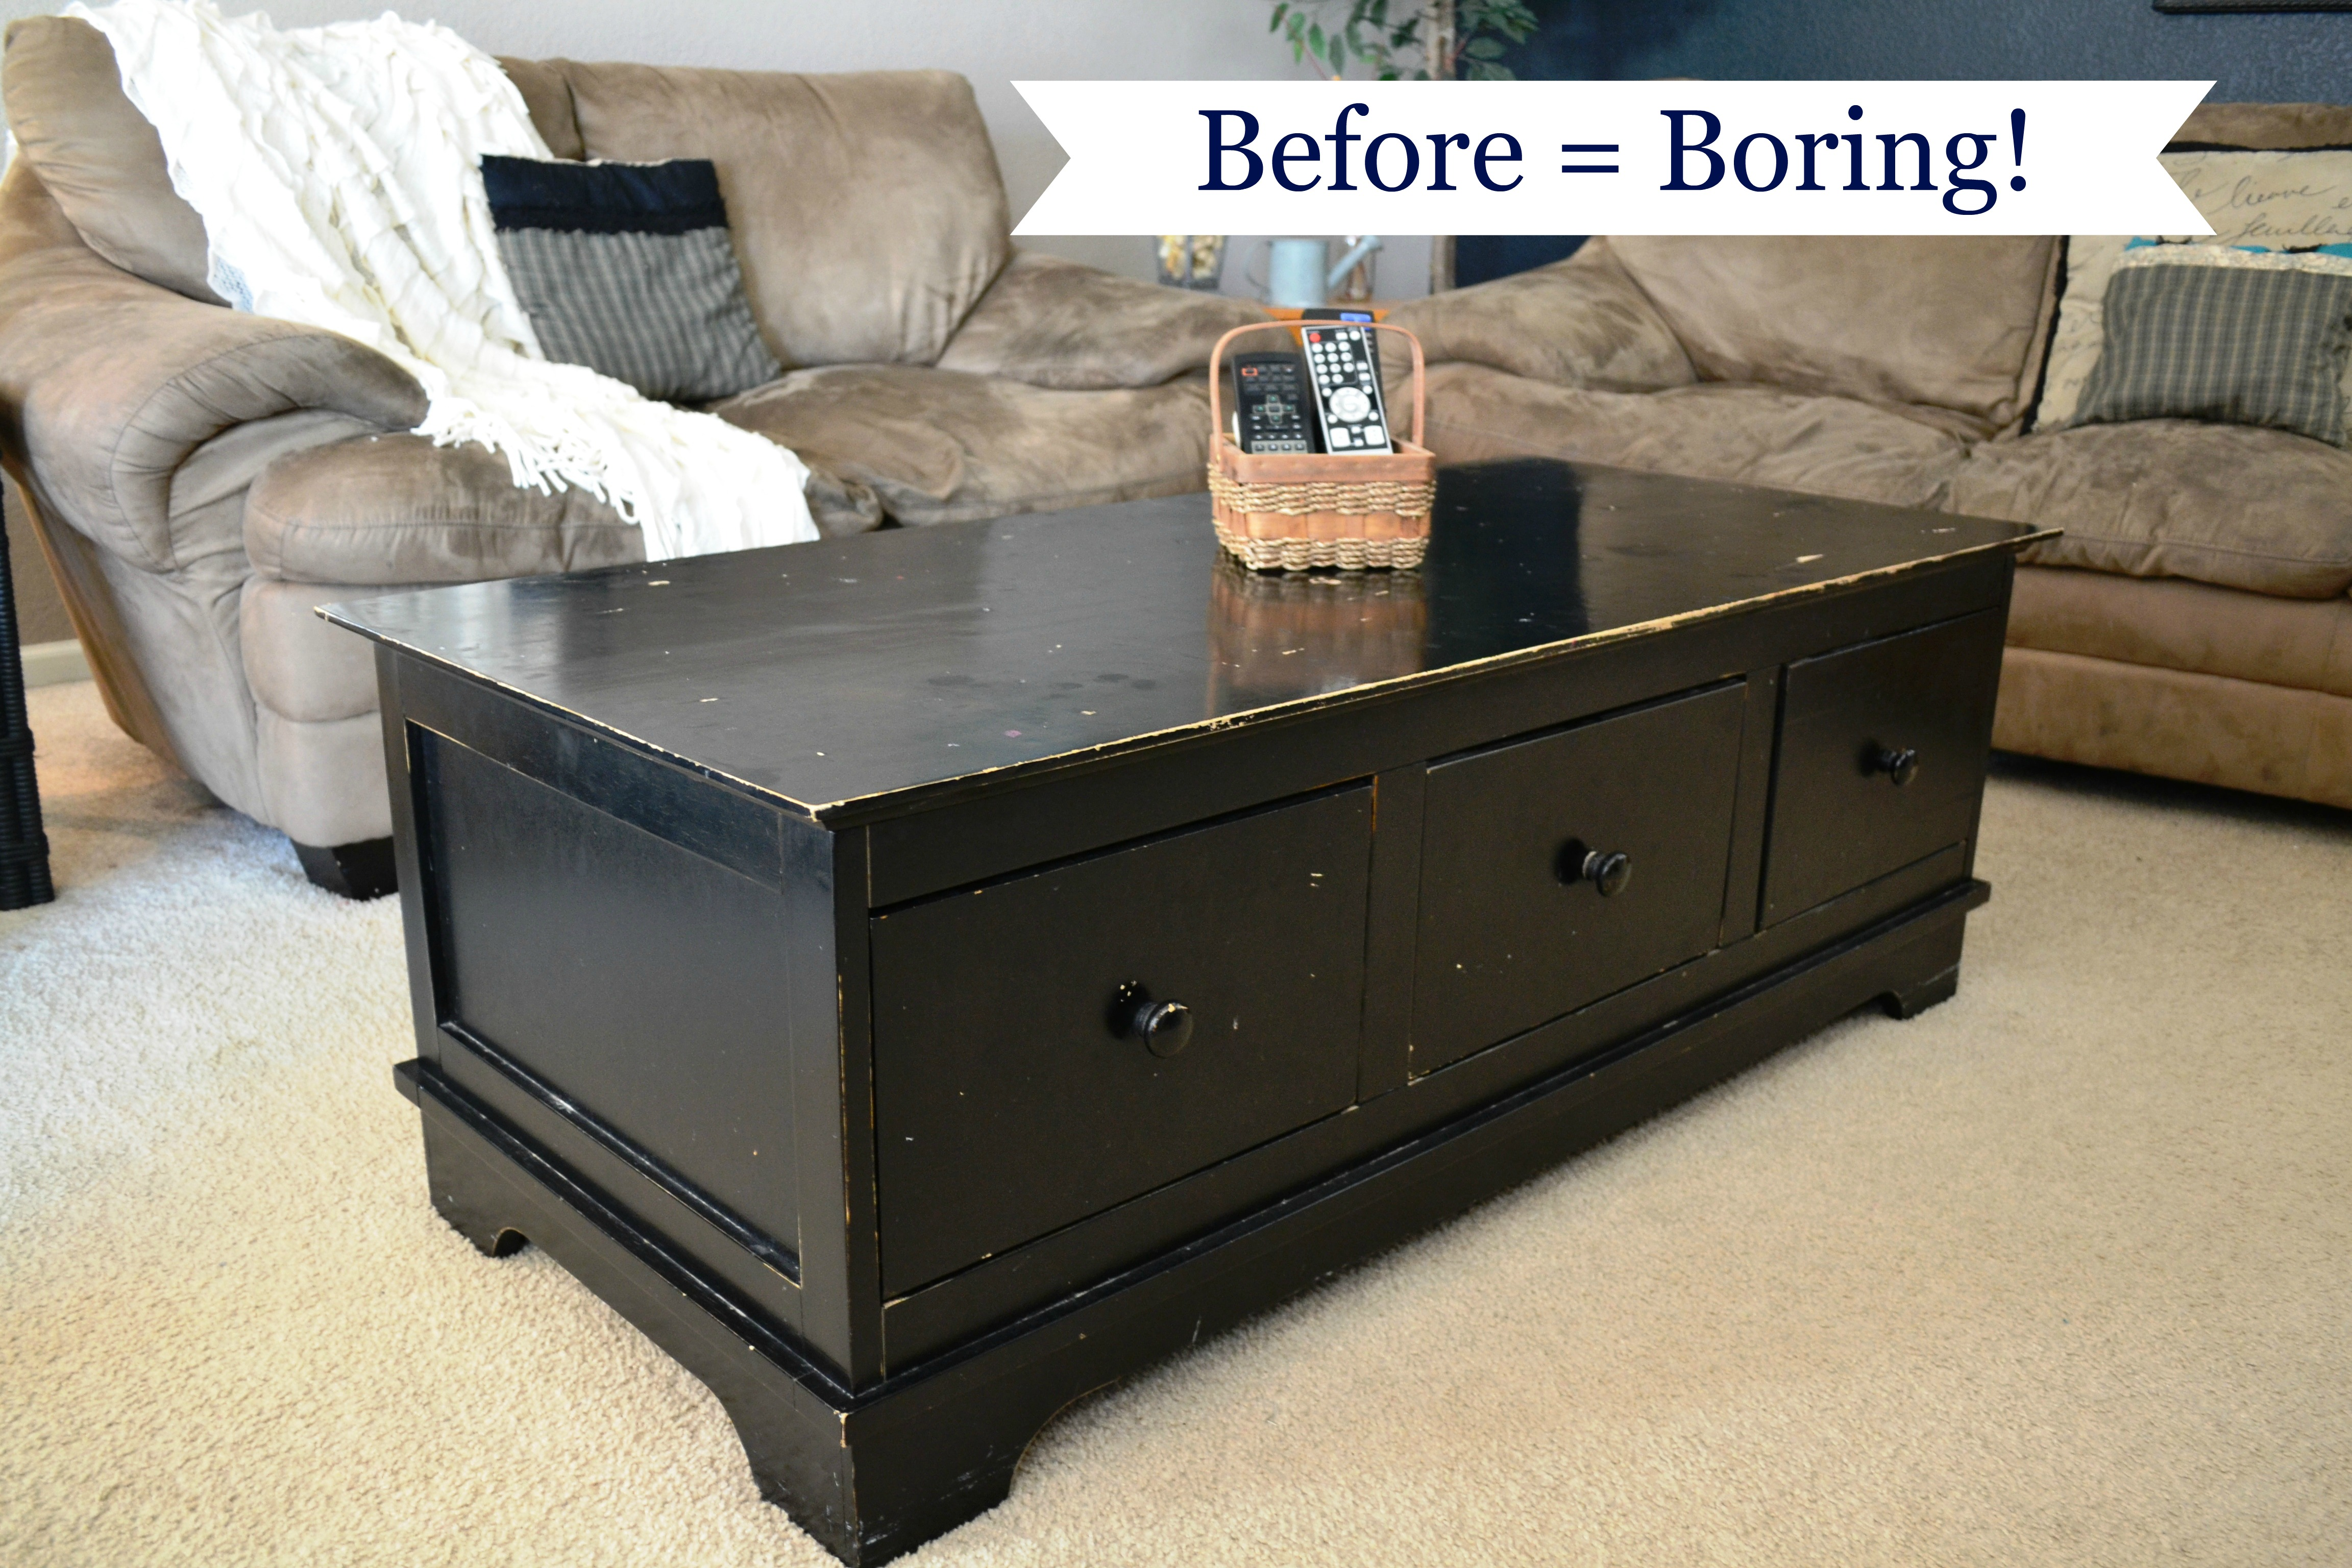 Boring coffee table... thehousedownthelane.com